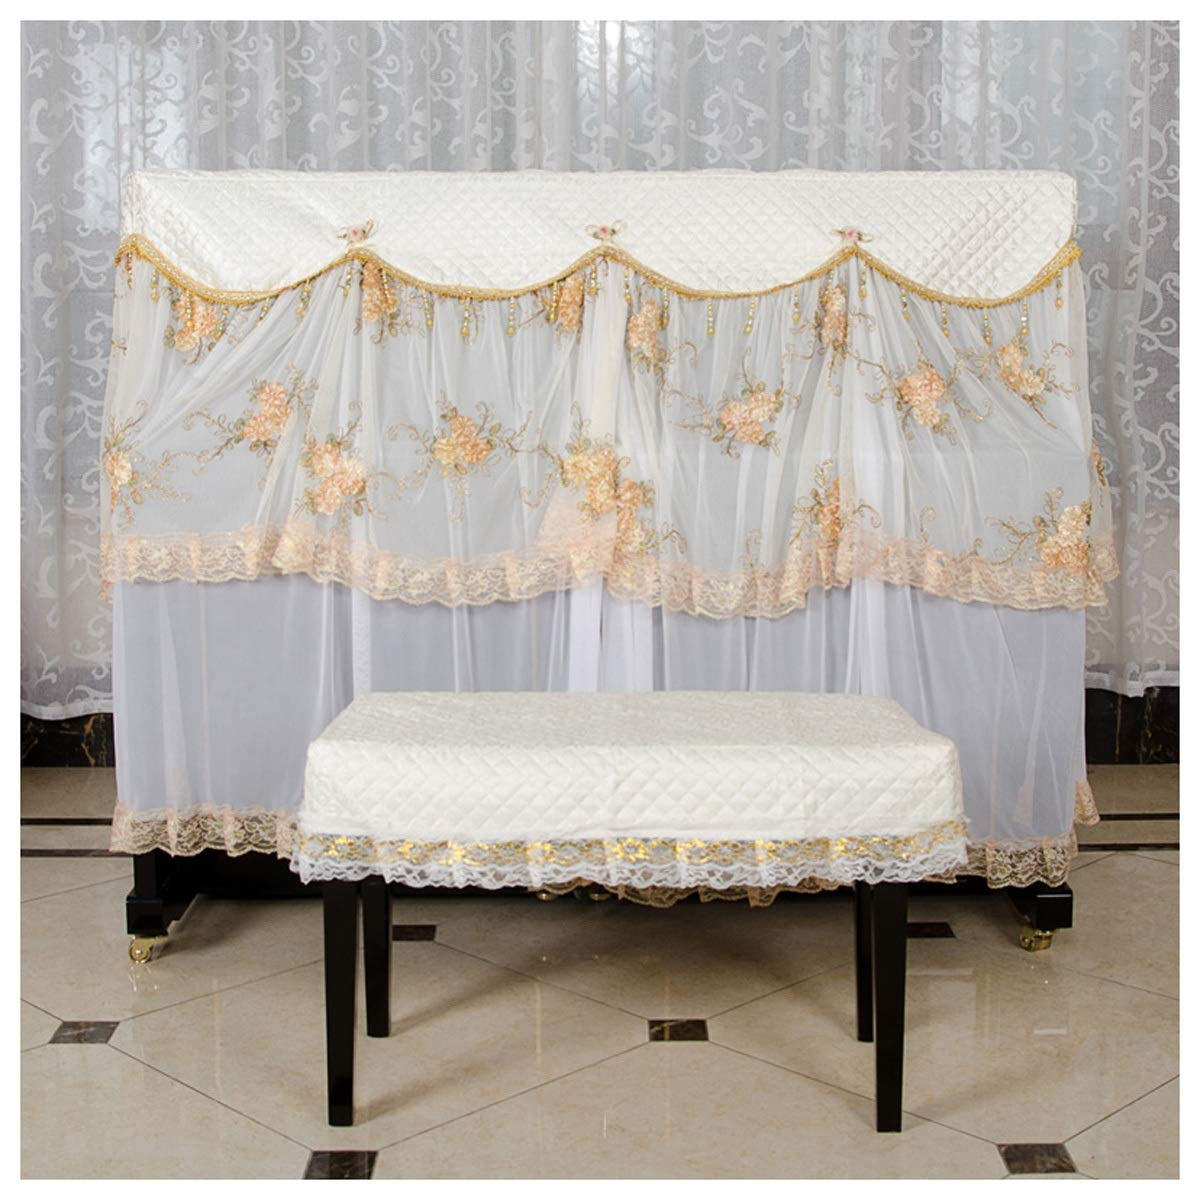 HongTeng Piano Cover Dust Cover Full Cover for Standard Upright Piano Support Custom with Stool Cover